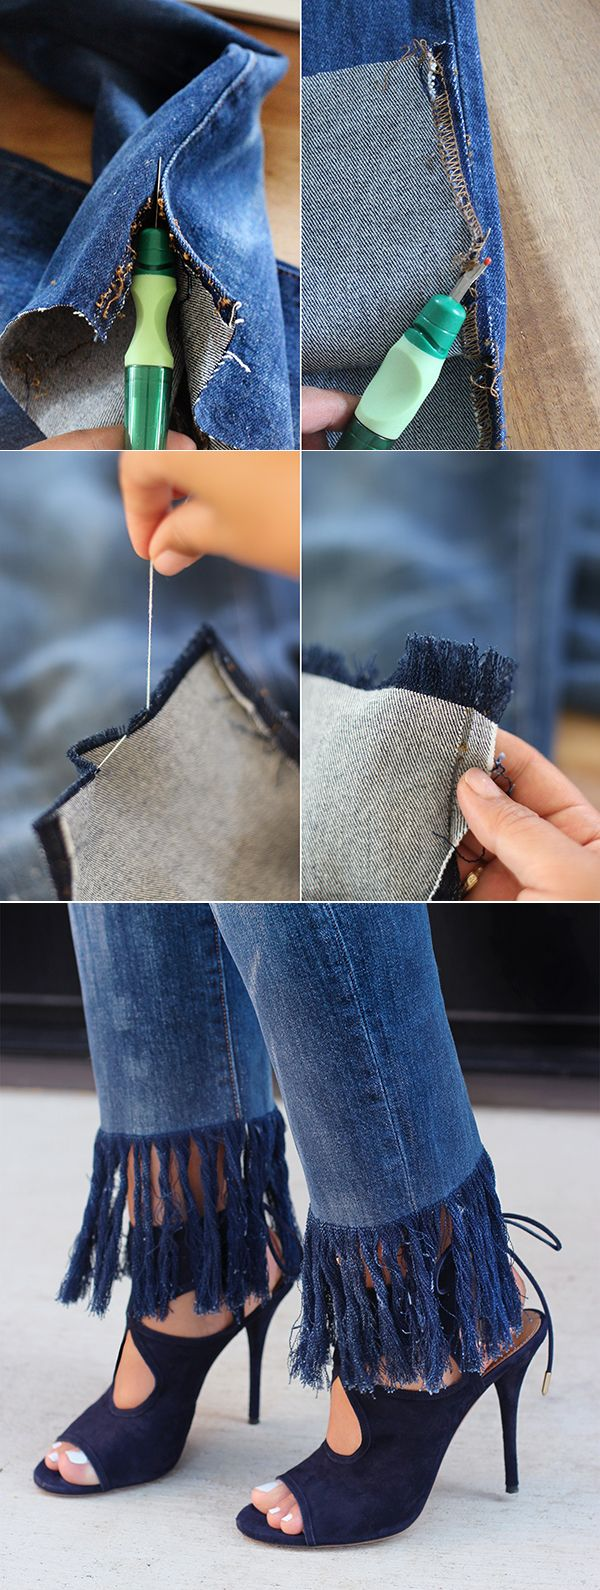 The trick to fraying denim via HonestlyWTF